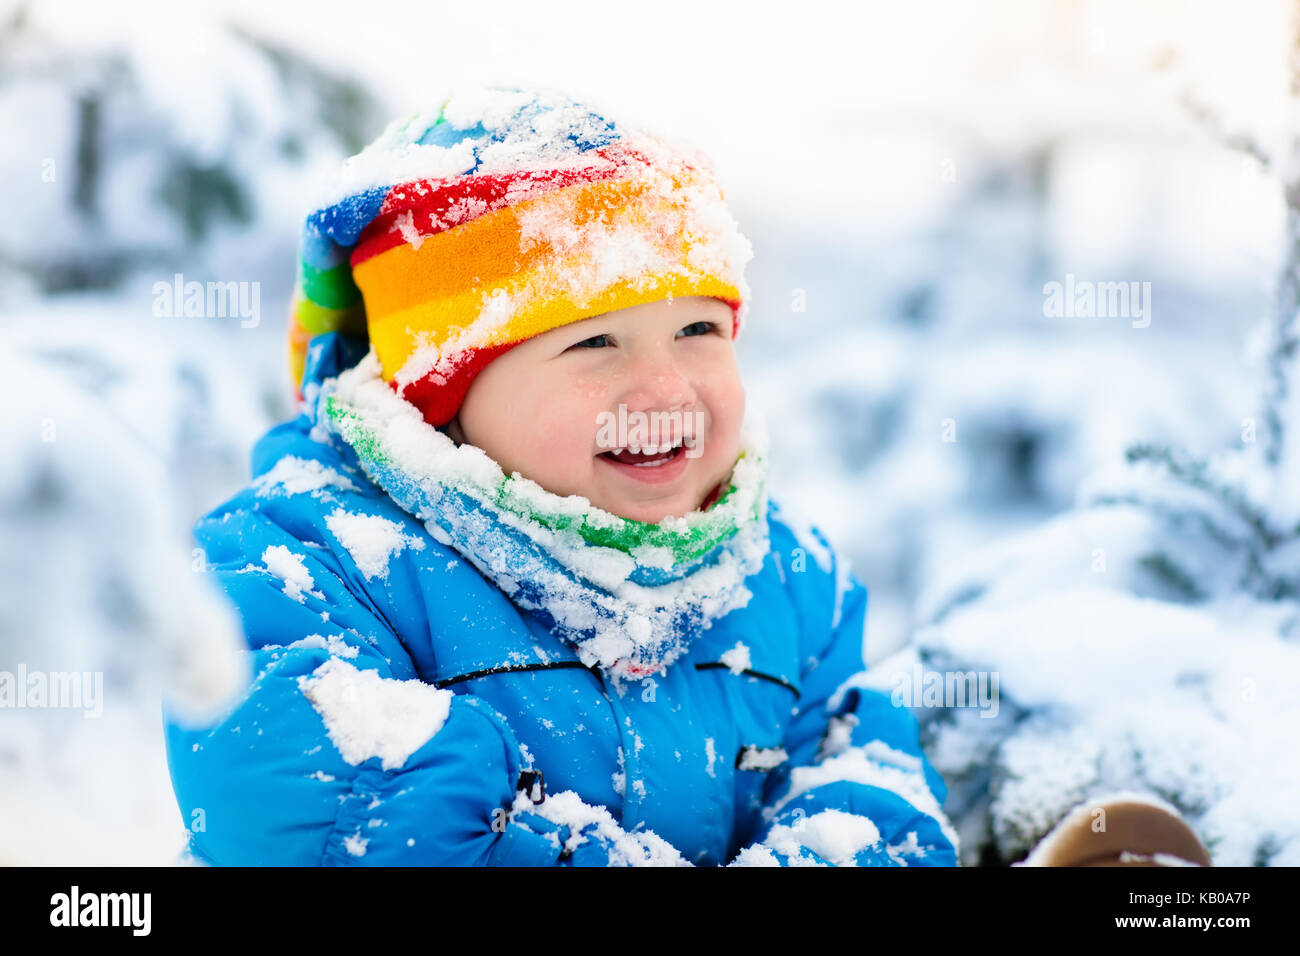 Baby playing with snow in winter. Little toddler boy in blue ...